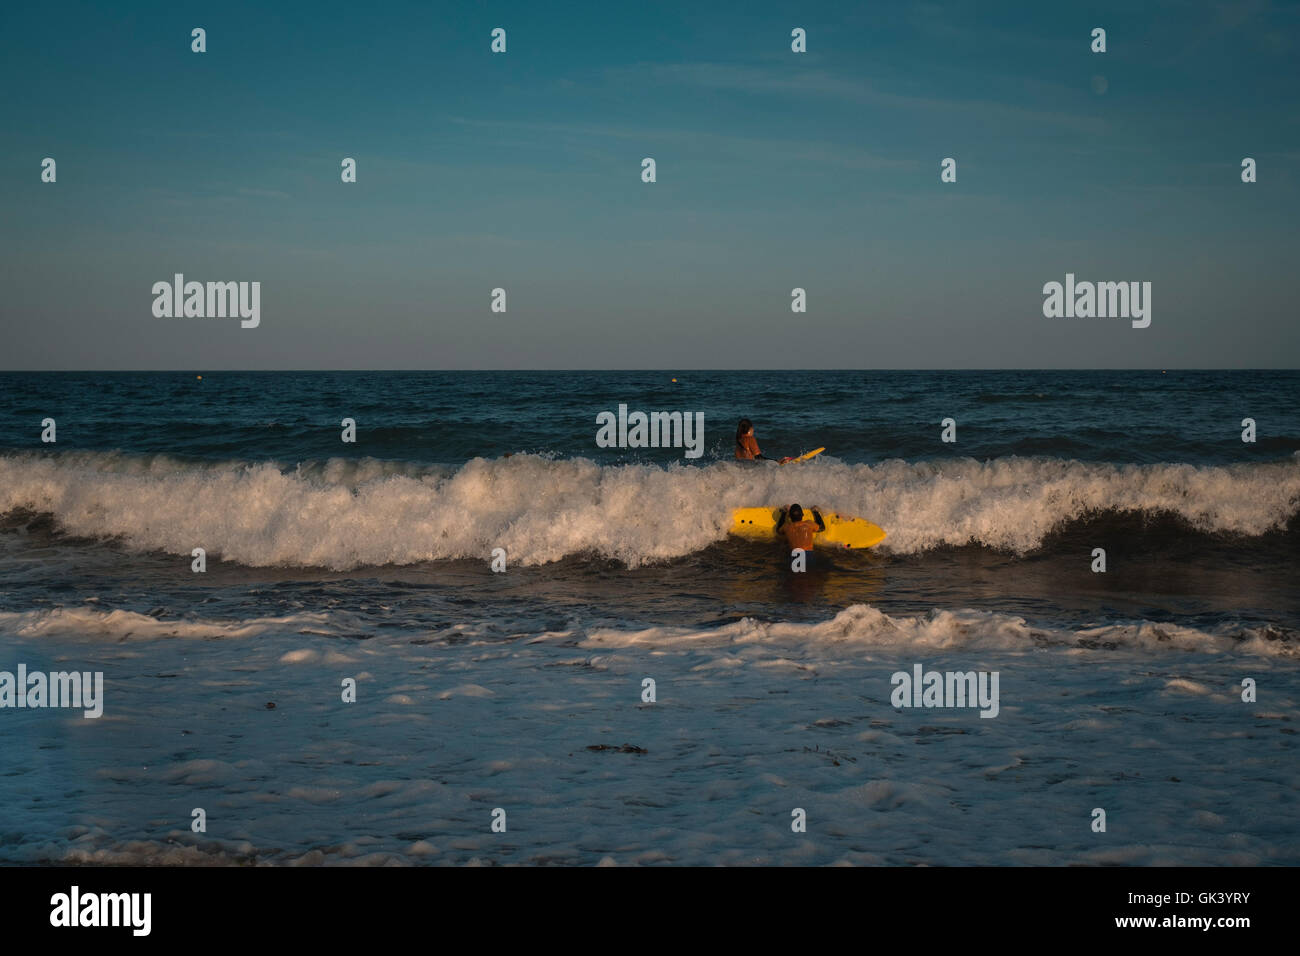 Two young surfers enjoying the late evening high tide as sun sets on Gyllyngvase Beach, Falmouth, Cornwall 15/08/16 - Stock Image